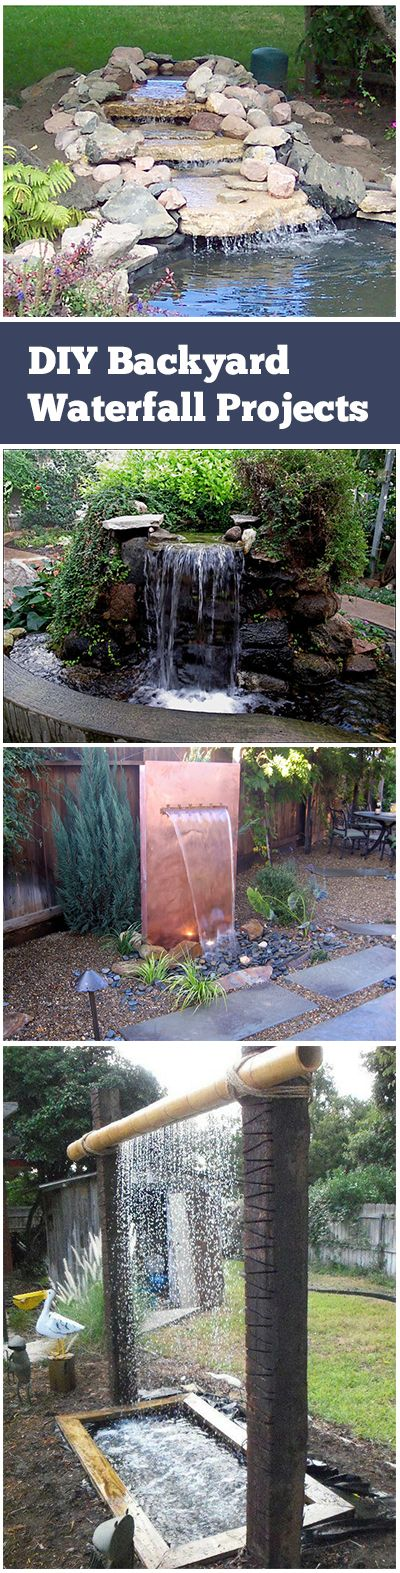 Backyard Water feature ideas DIY waterfalls ponds